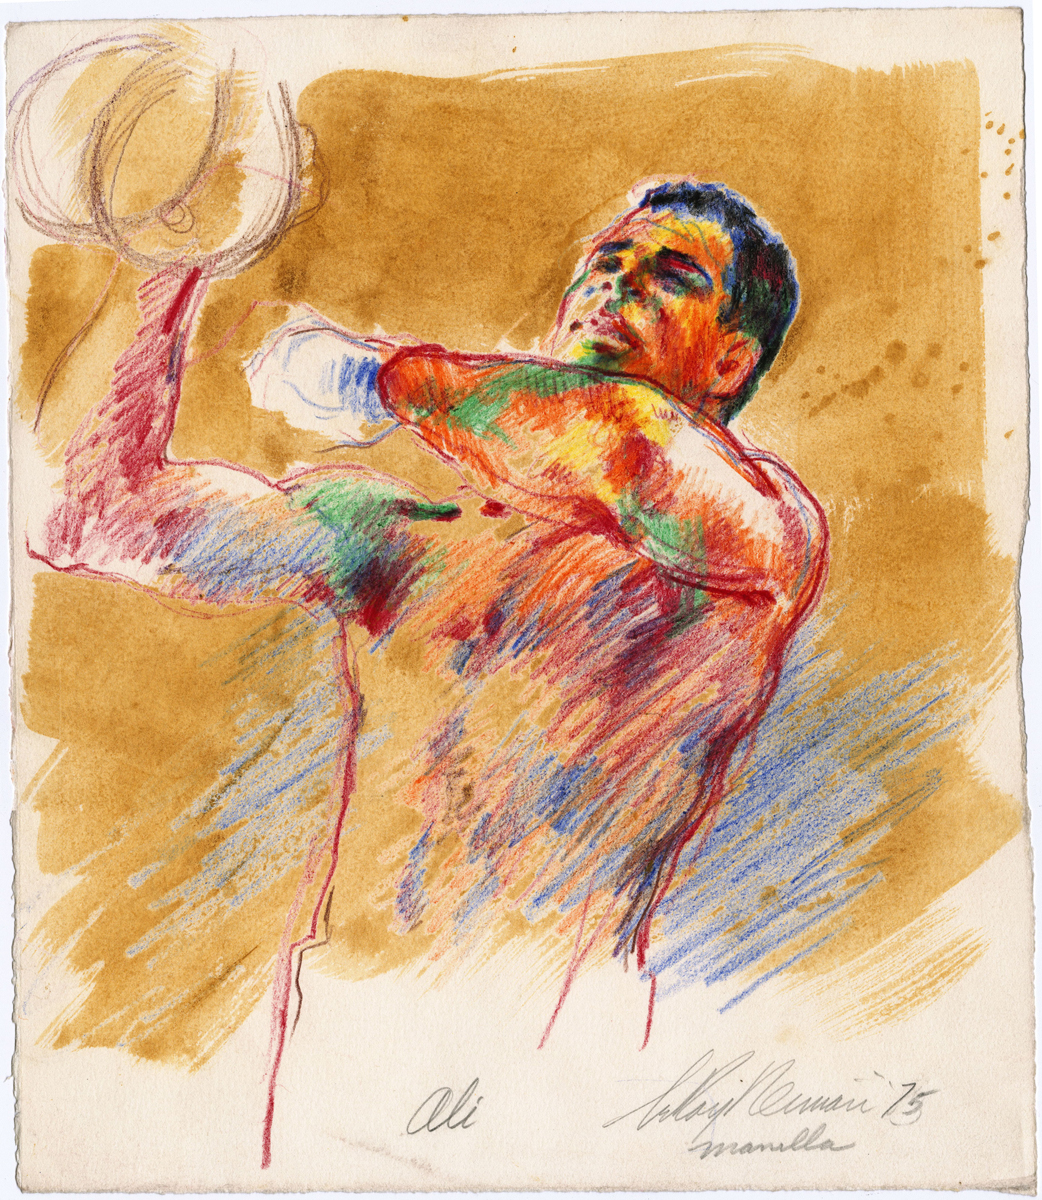 Ali on speed bag in Manilla, mixed media on paper, 15 x 13 in, 1975